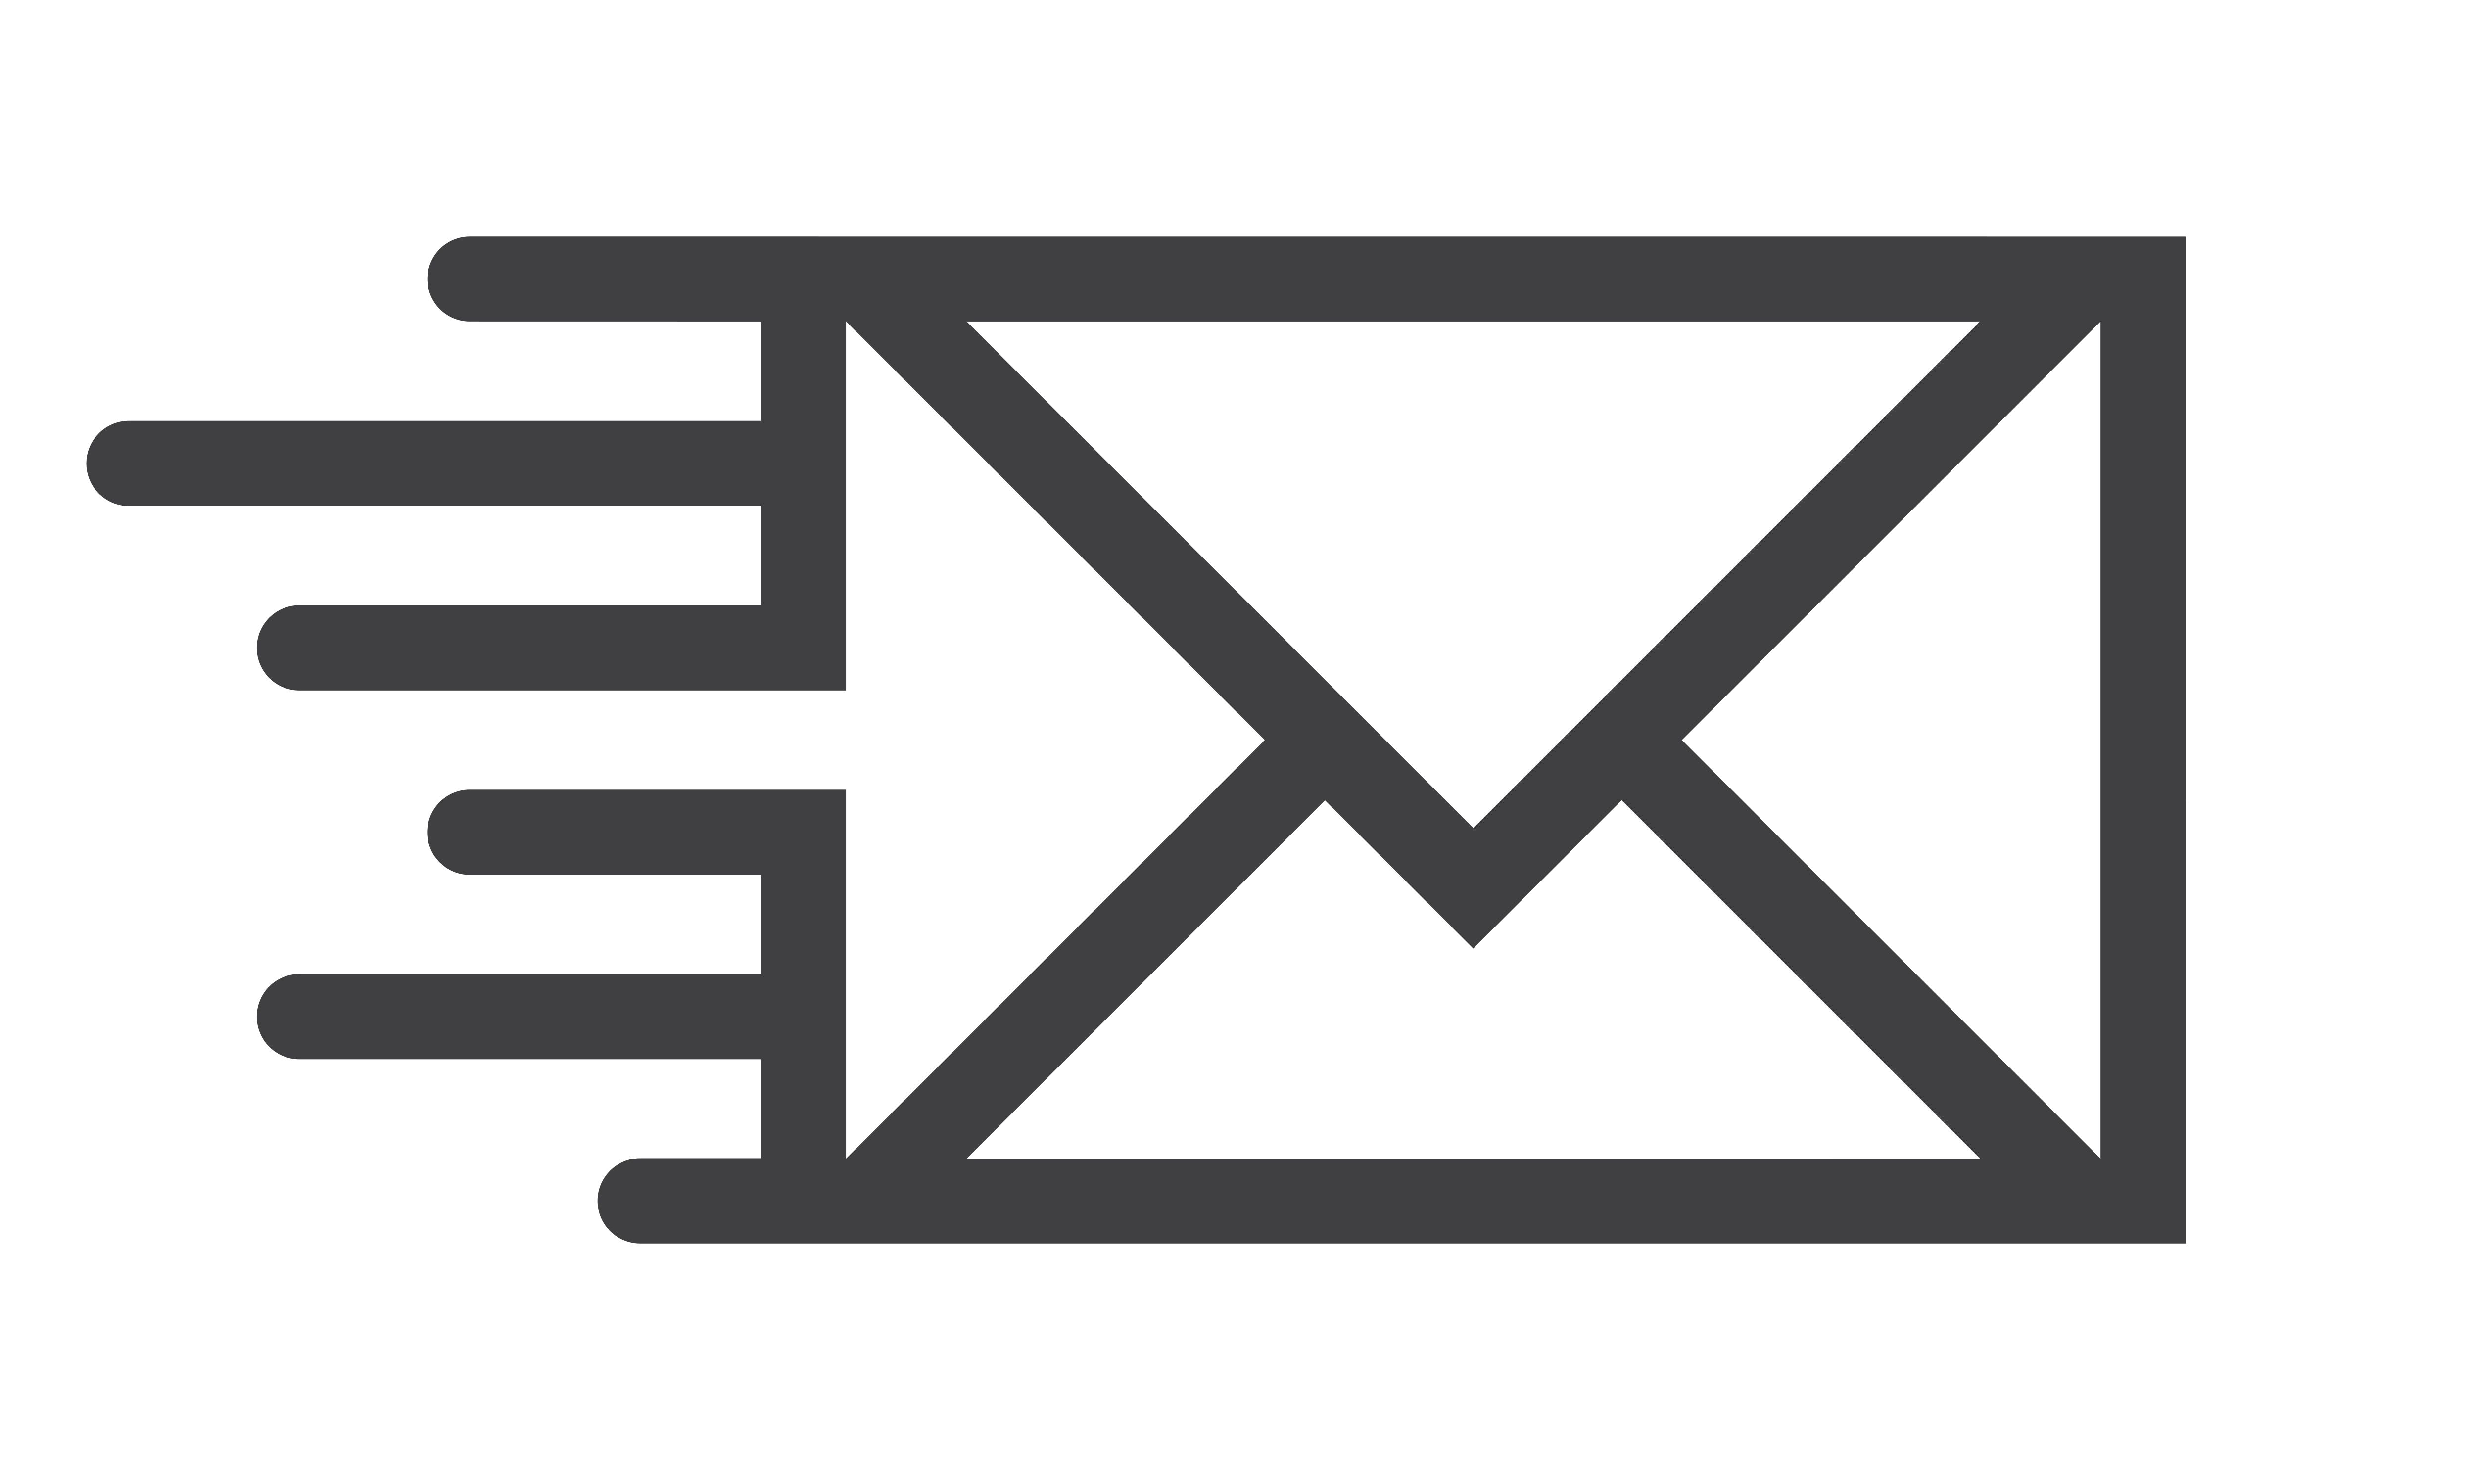 Email Cover Letter Examples and Formats